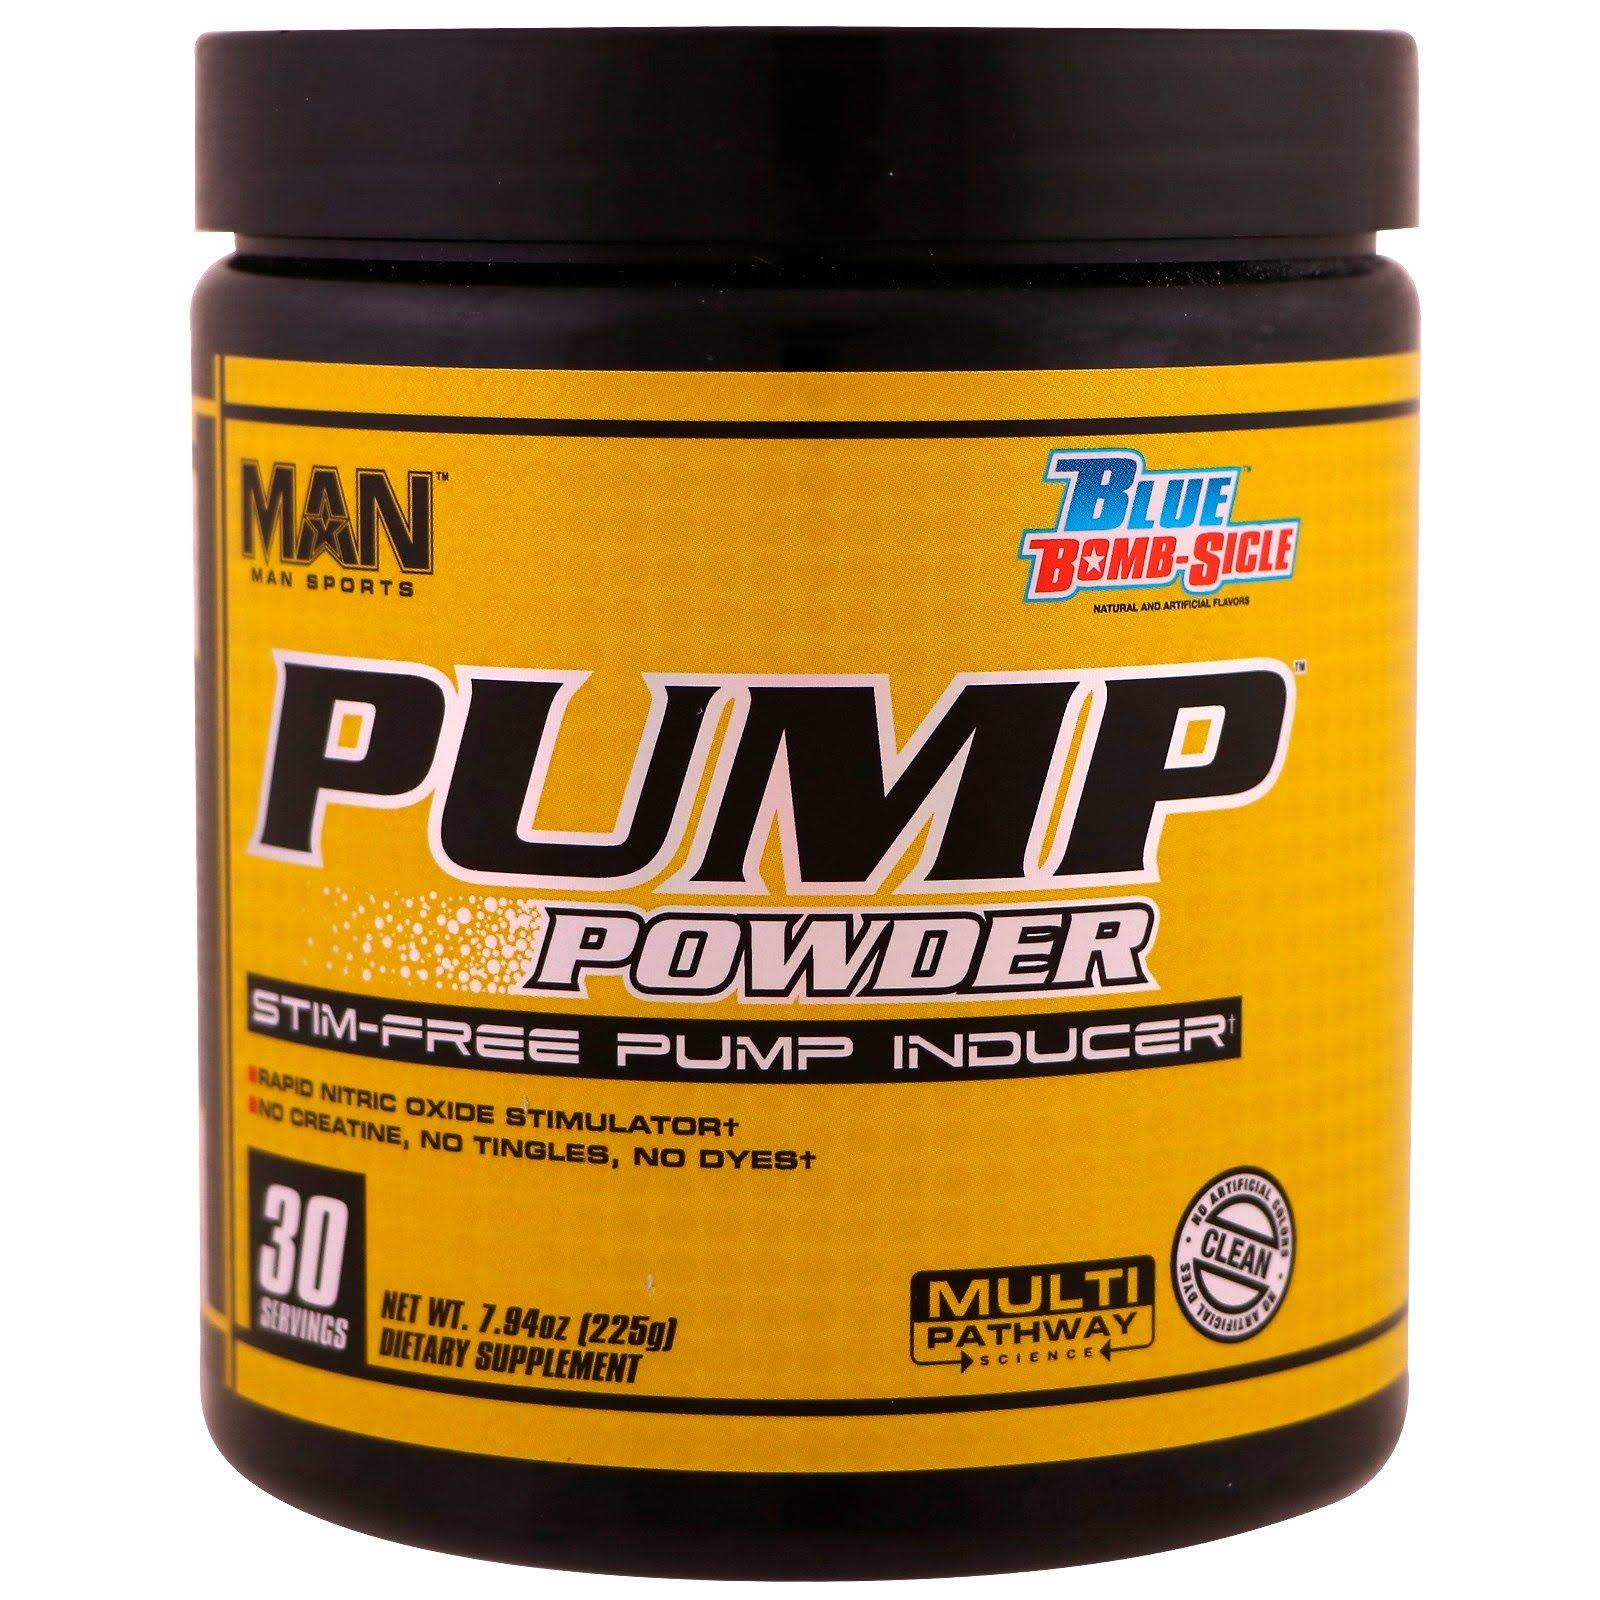 Man Sports Pump Powder Pre Workout Nitric Oxide Dietary Supplement - Blue Bomb Sicle, 30 Servings, 225g